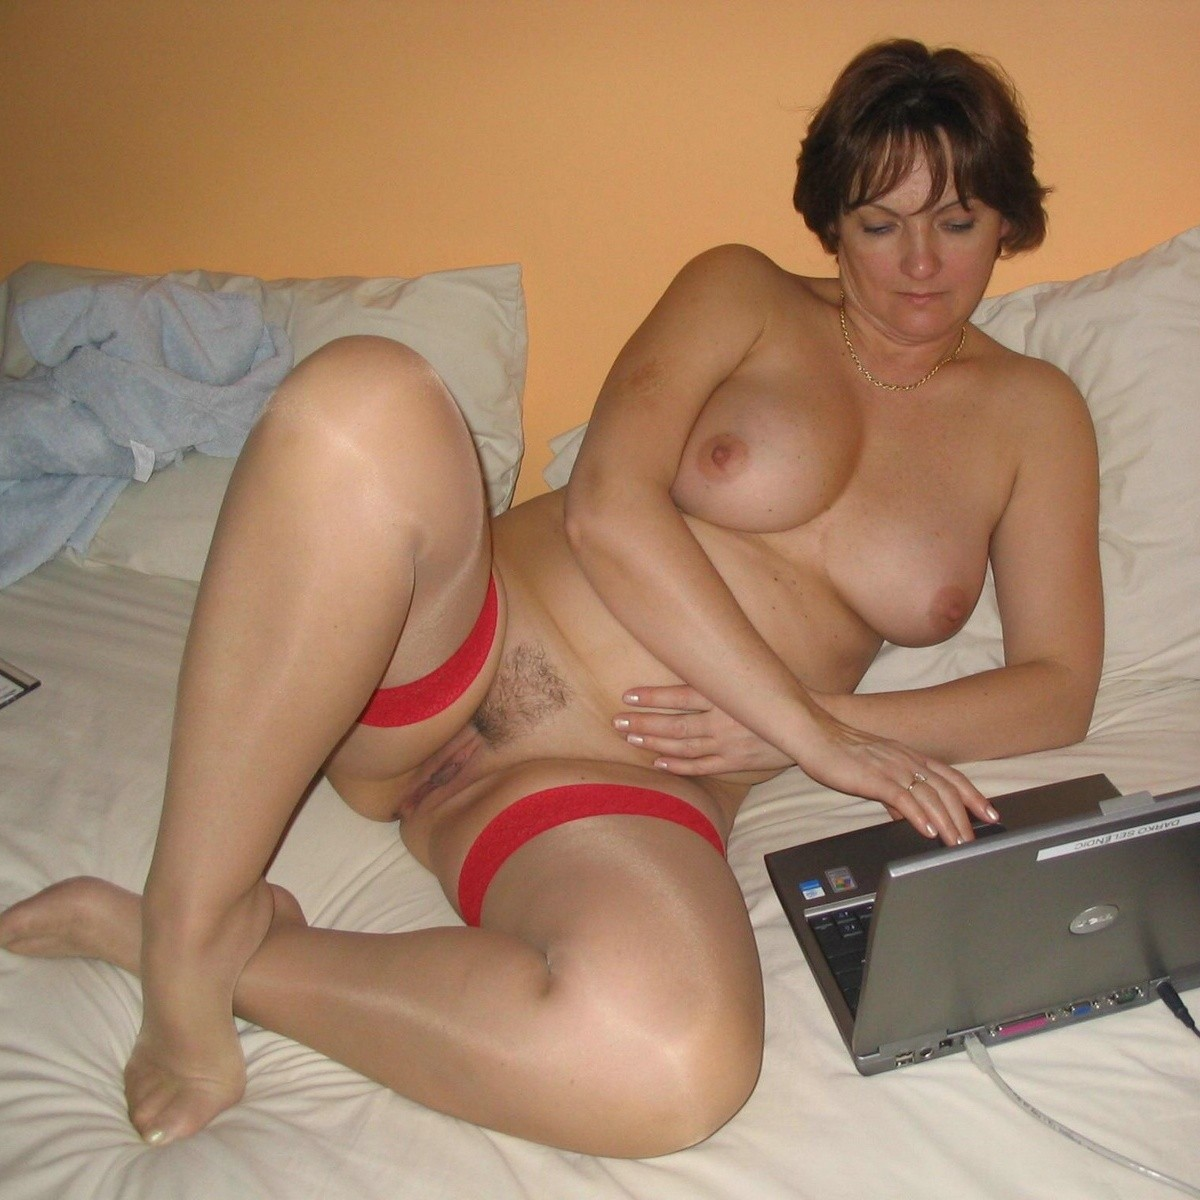 Busty mom and son having sex